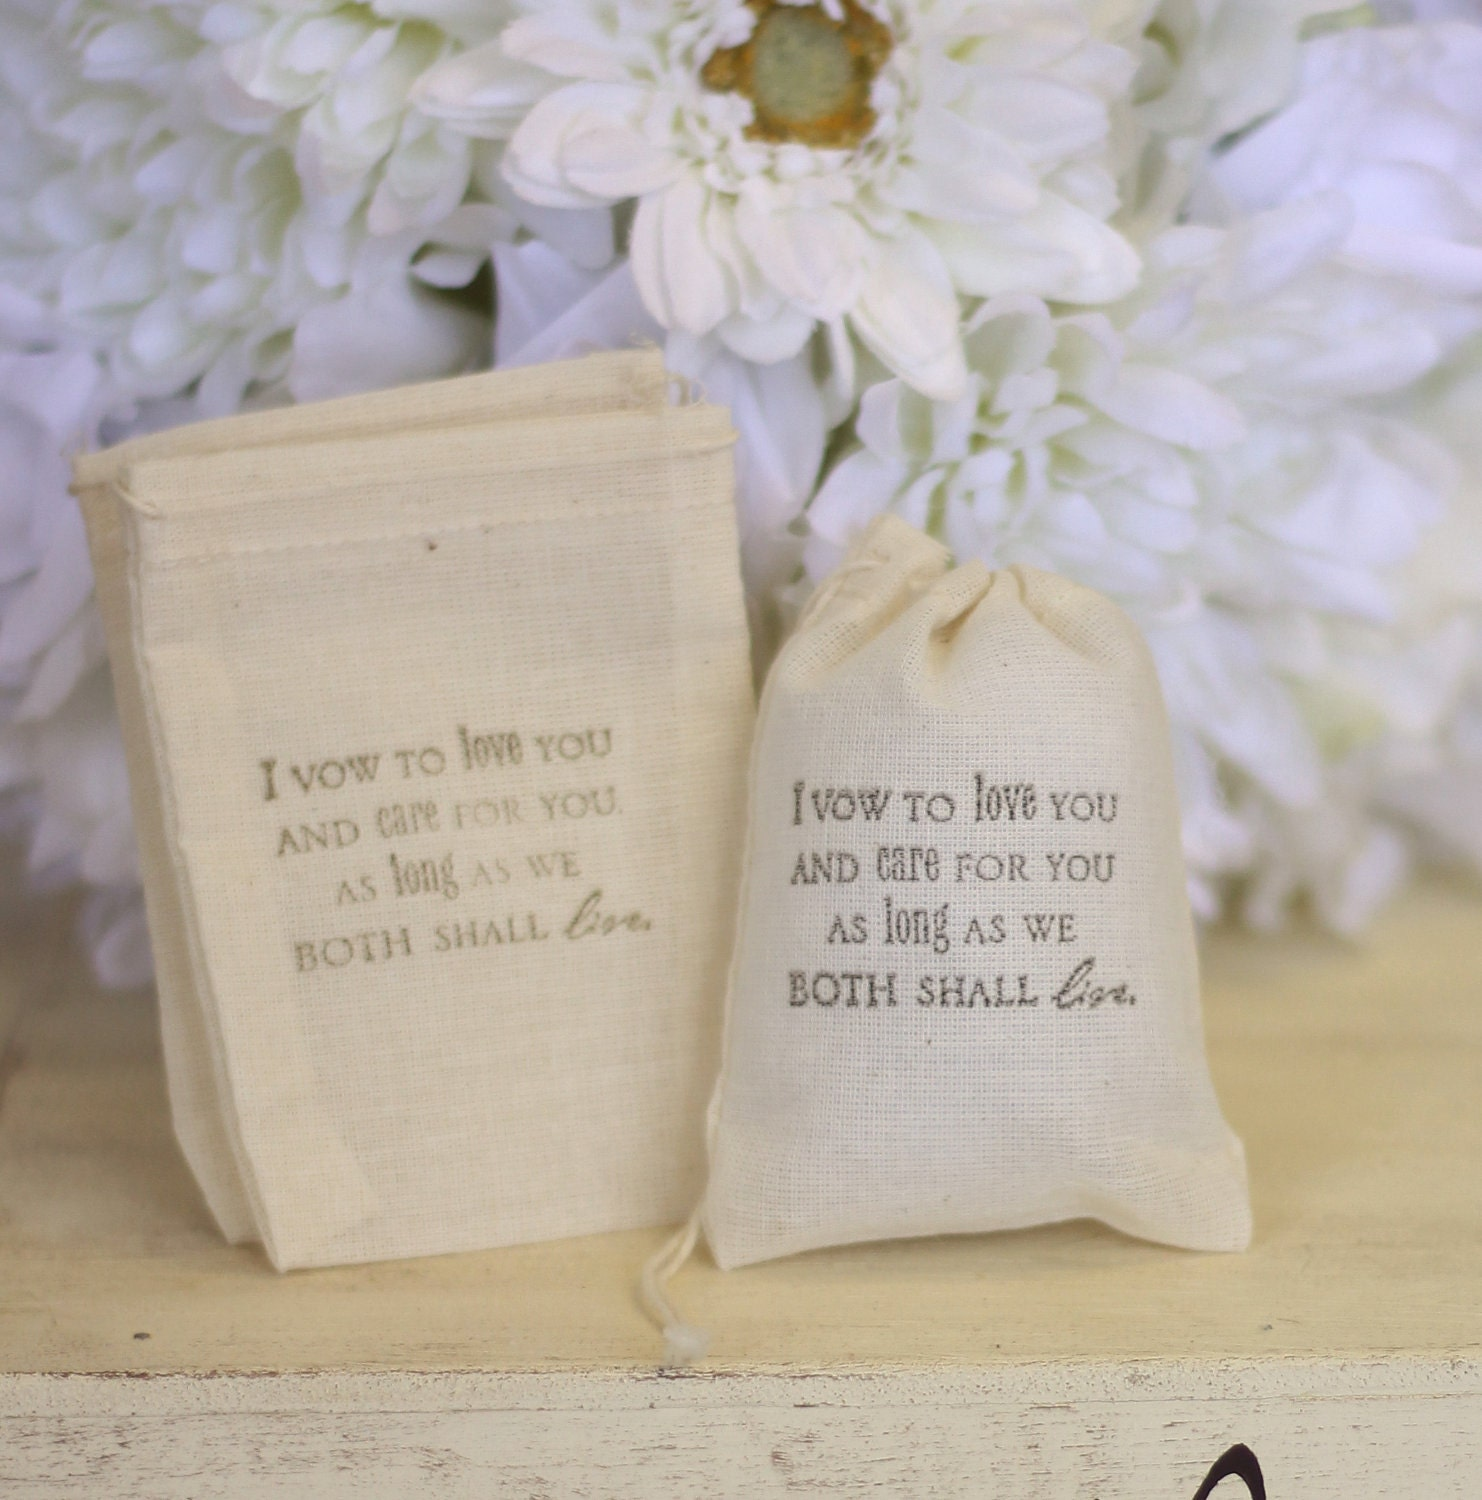 Quotes For Wedding Gift Bags : Items similar to Rustic Wedding Favor Bags LOVE Quote Candy Bags ...